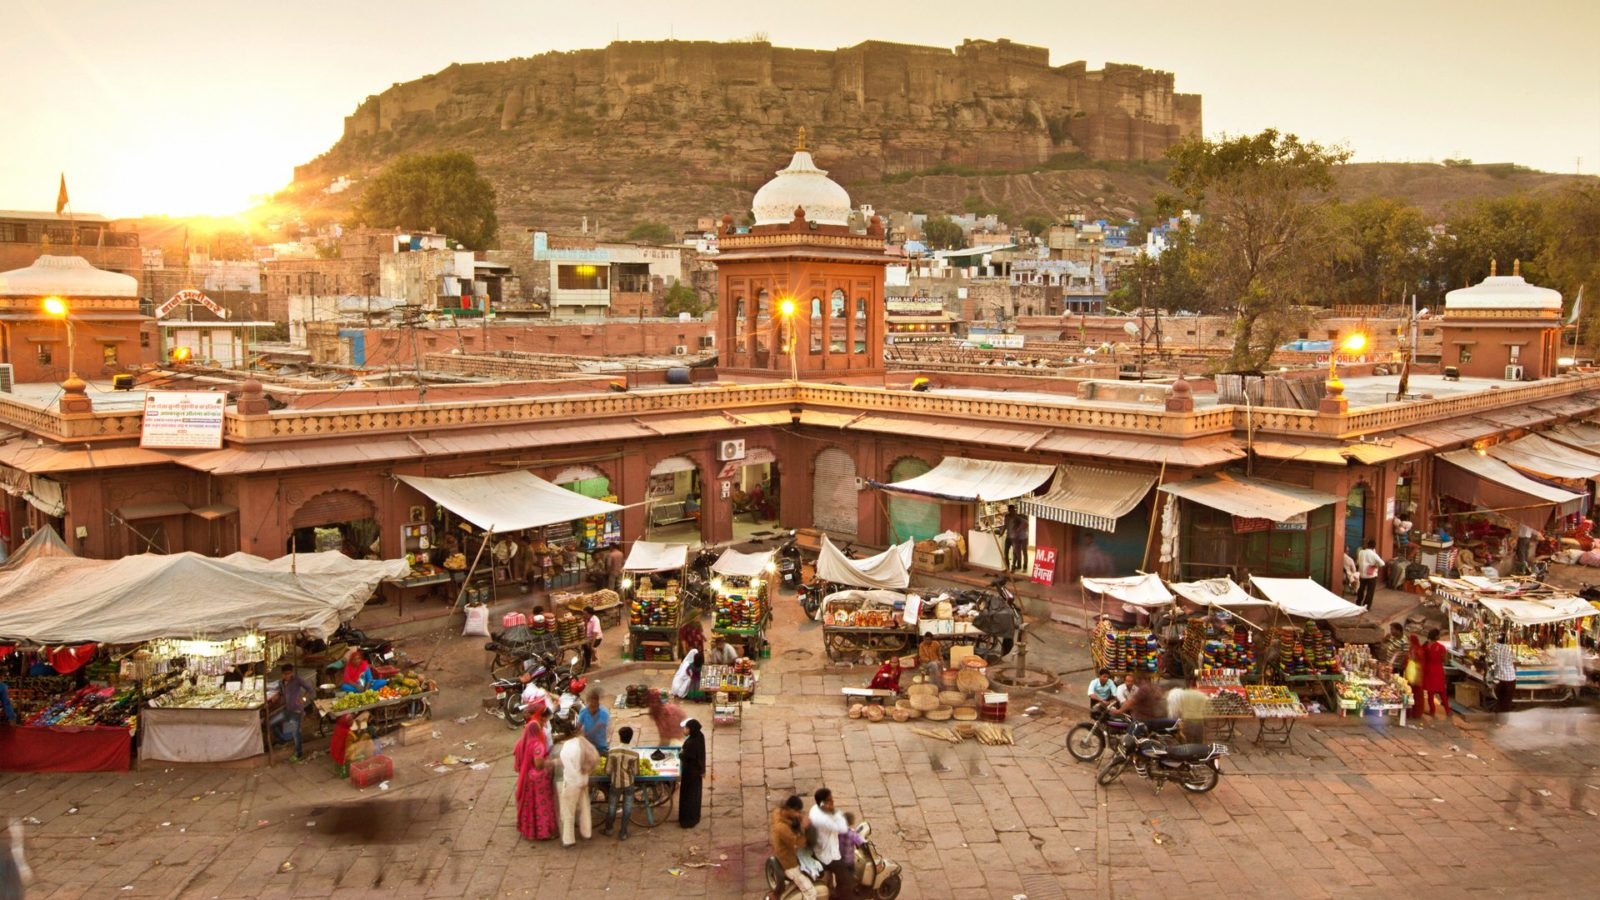 Sojati Gate- The Art and Craft Market of Jodhpur